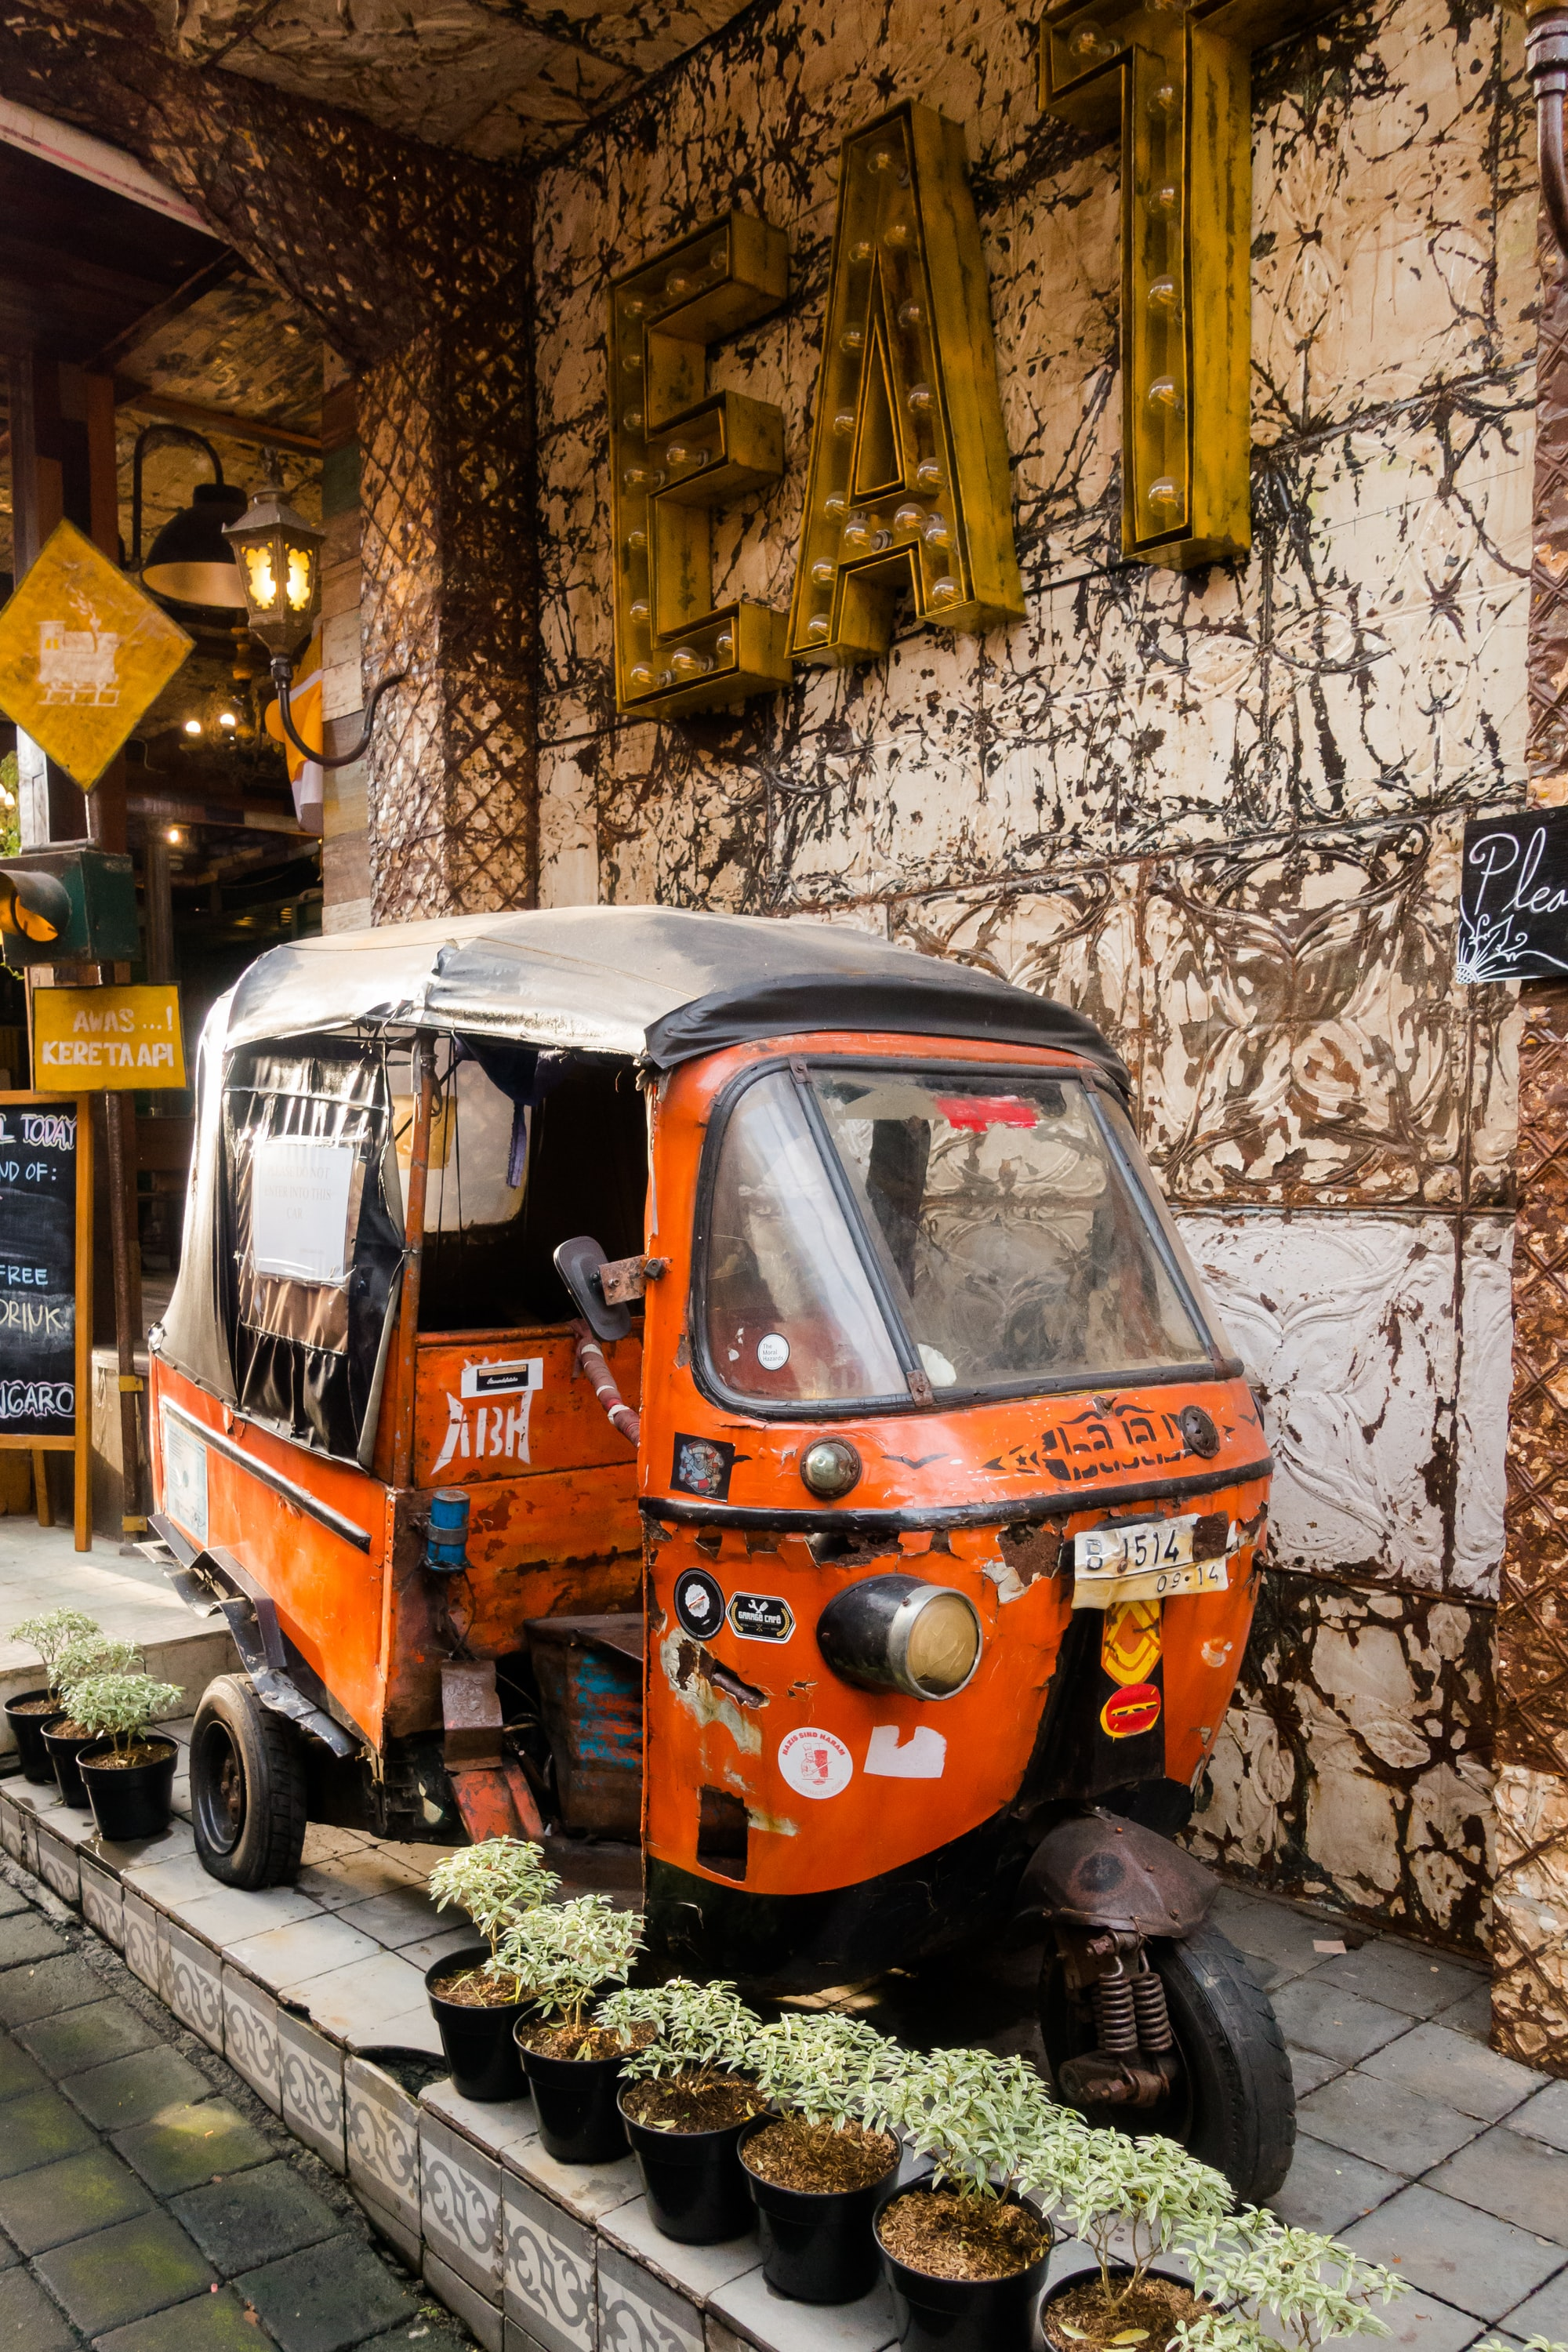 Retired Tuk Tuk